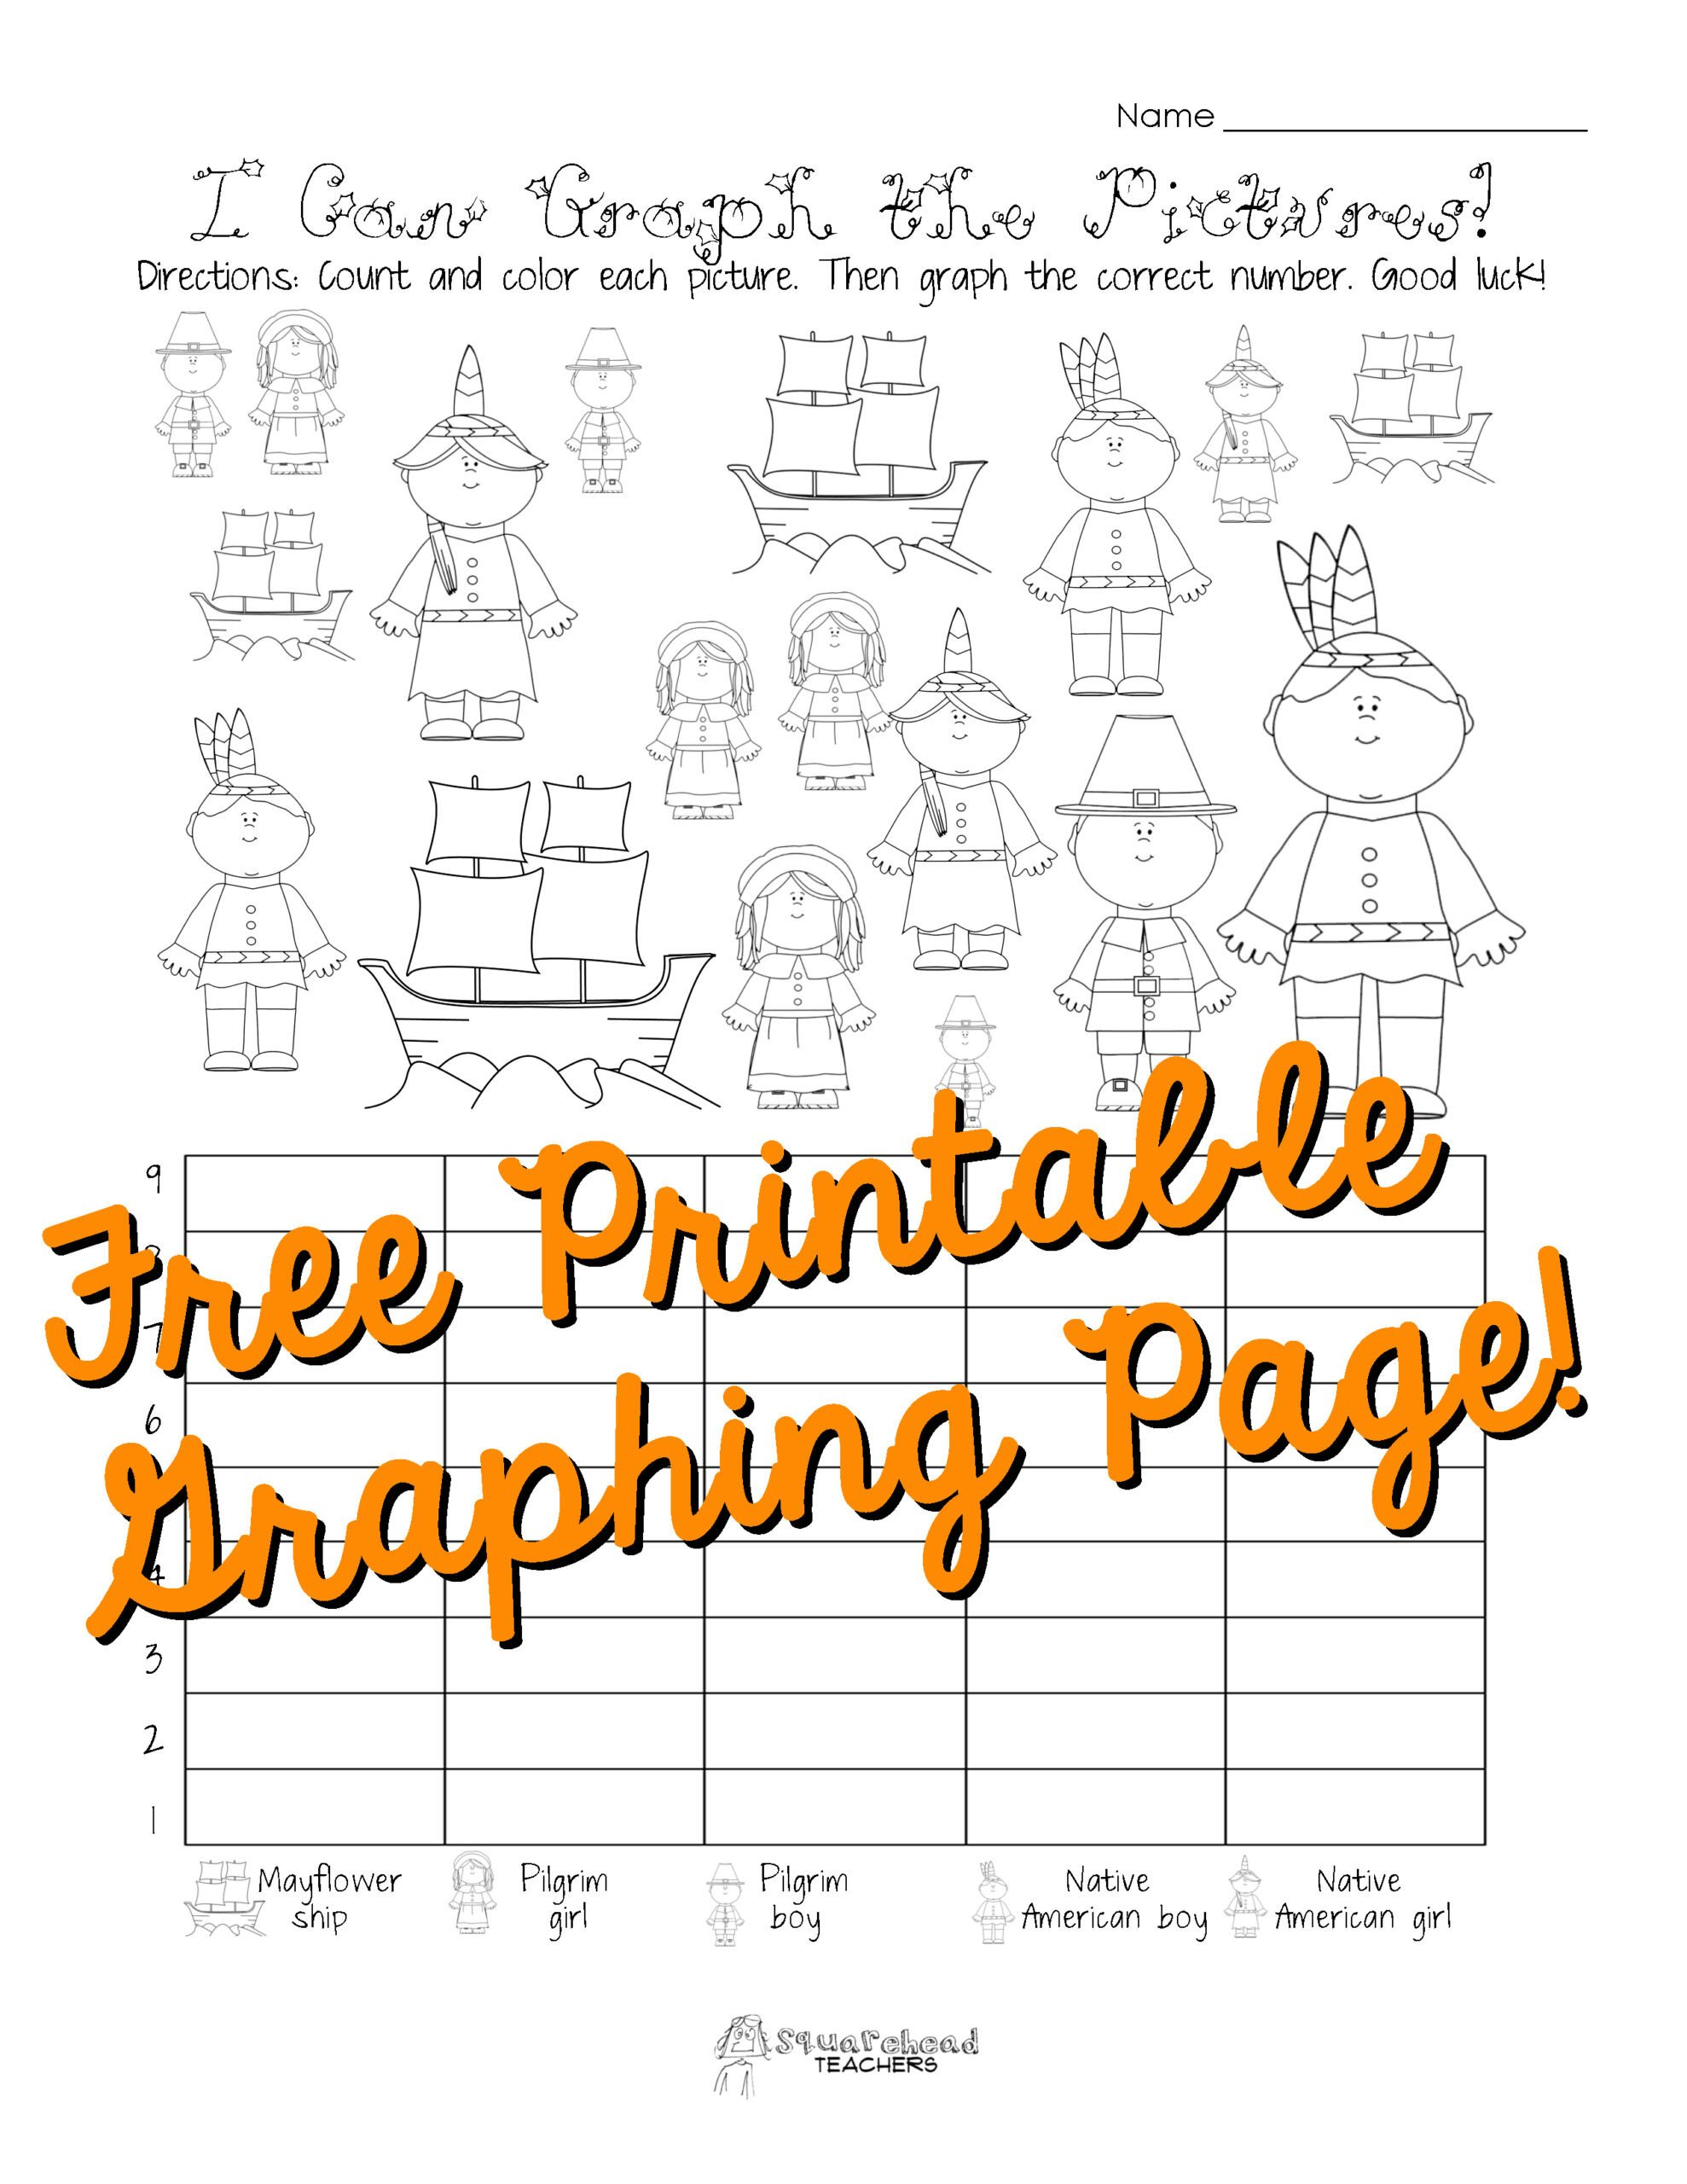 Thanksgiving Math Worksheets Kindergarten Christmas Activity Sheets for Children Nightmare before Free